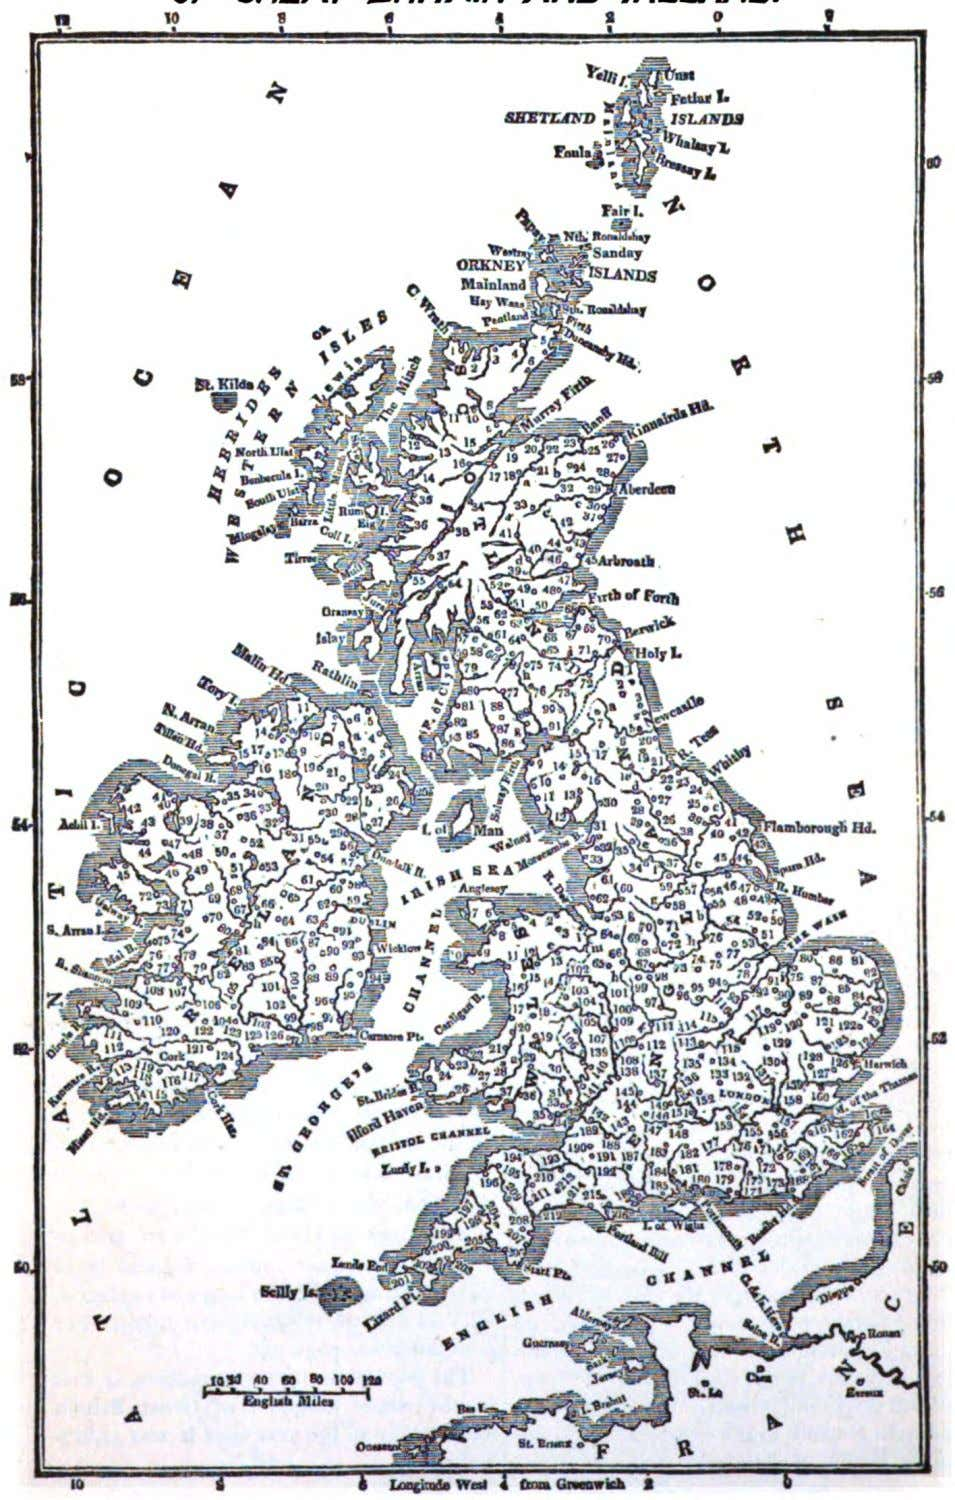 MAP Or THE U/V/7TD WWDOM OF GREATBft/TAMAND /RELAND.